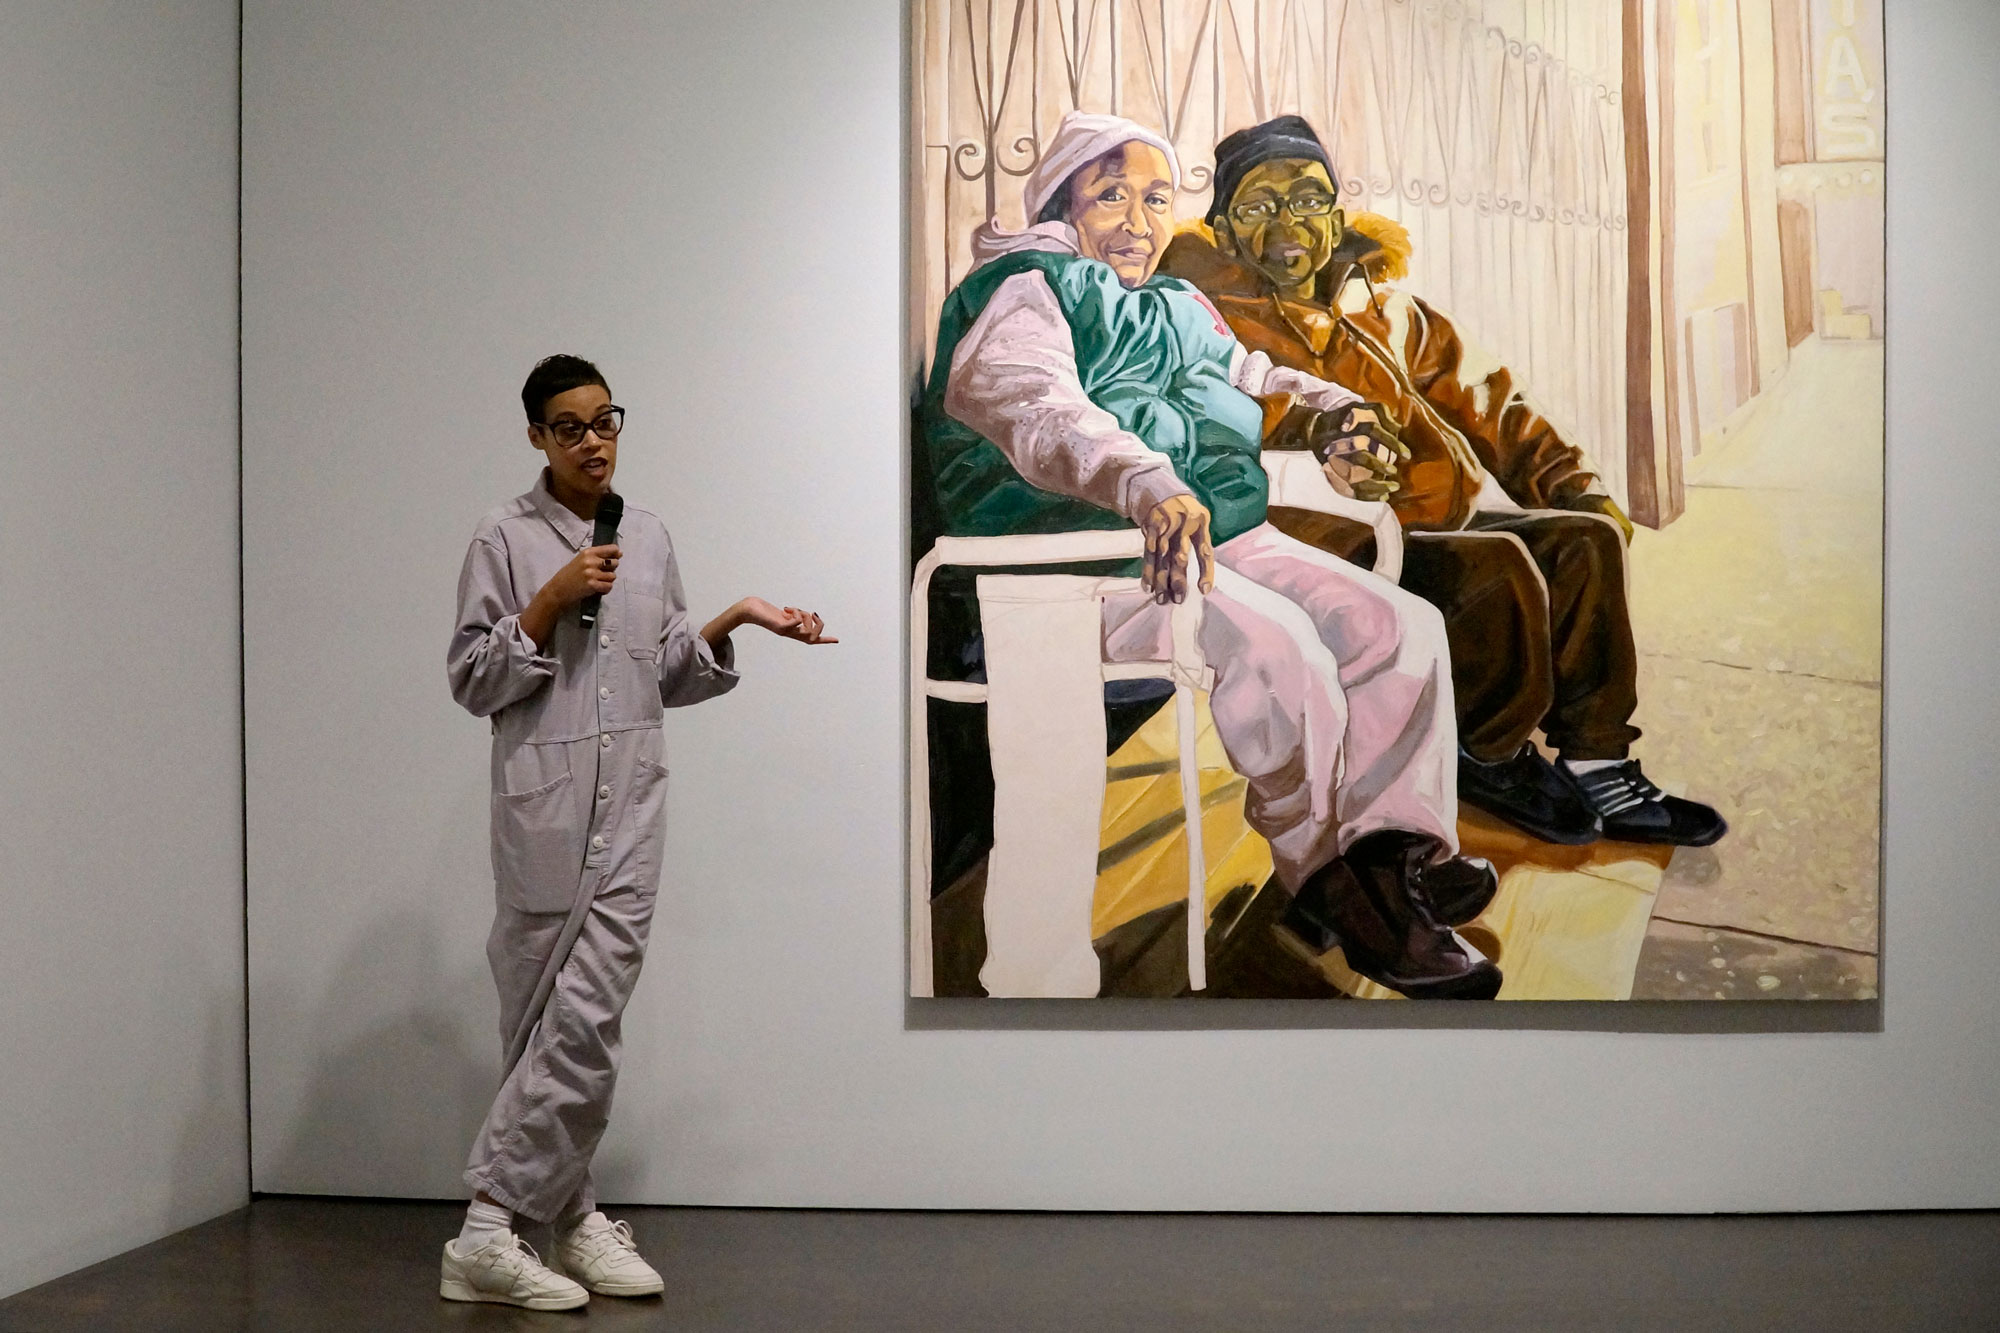 <p>Denver-born portrait artist Jordan Casteel speaks during the Denver Art Museum's media preview of her first solo museum exhibition on Jan. 31, 2019.</p>